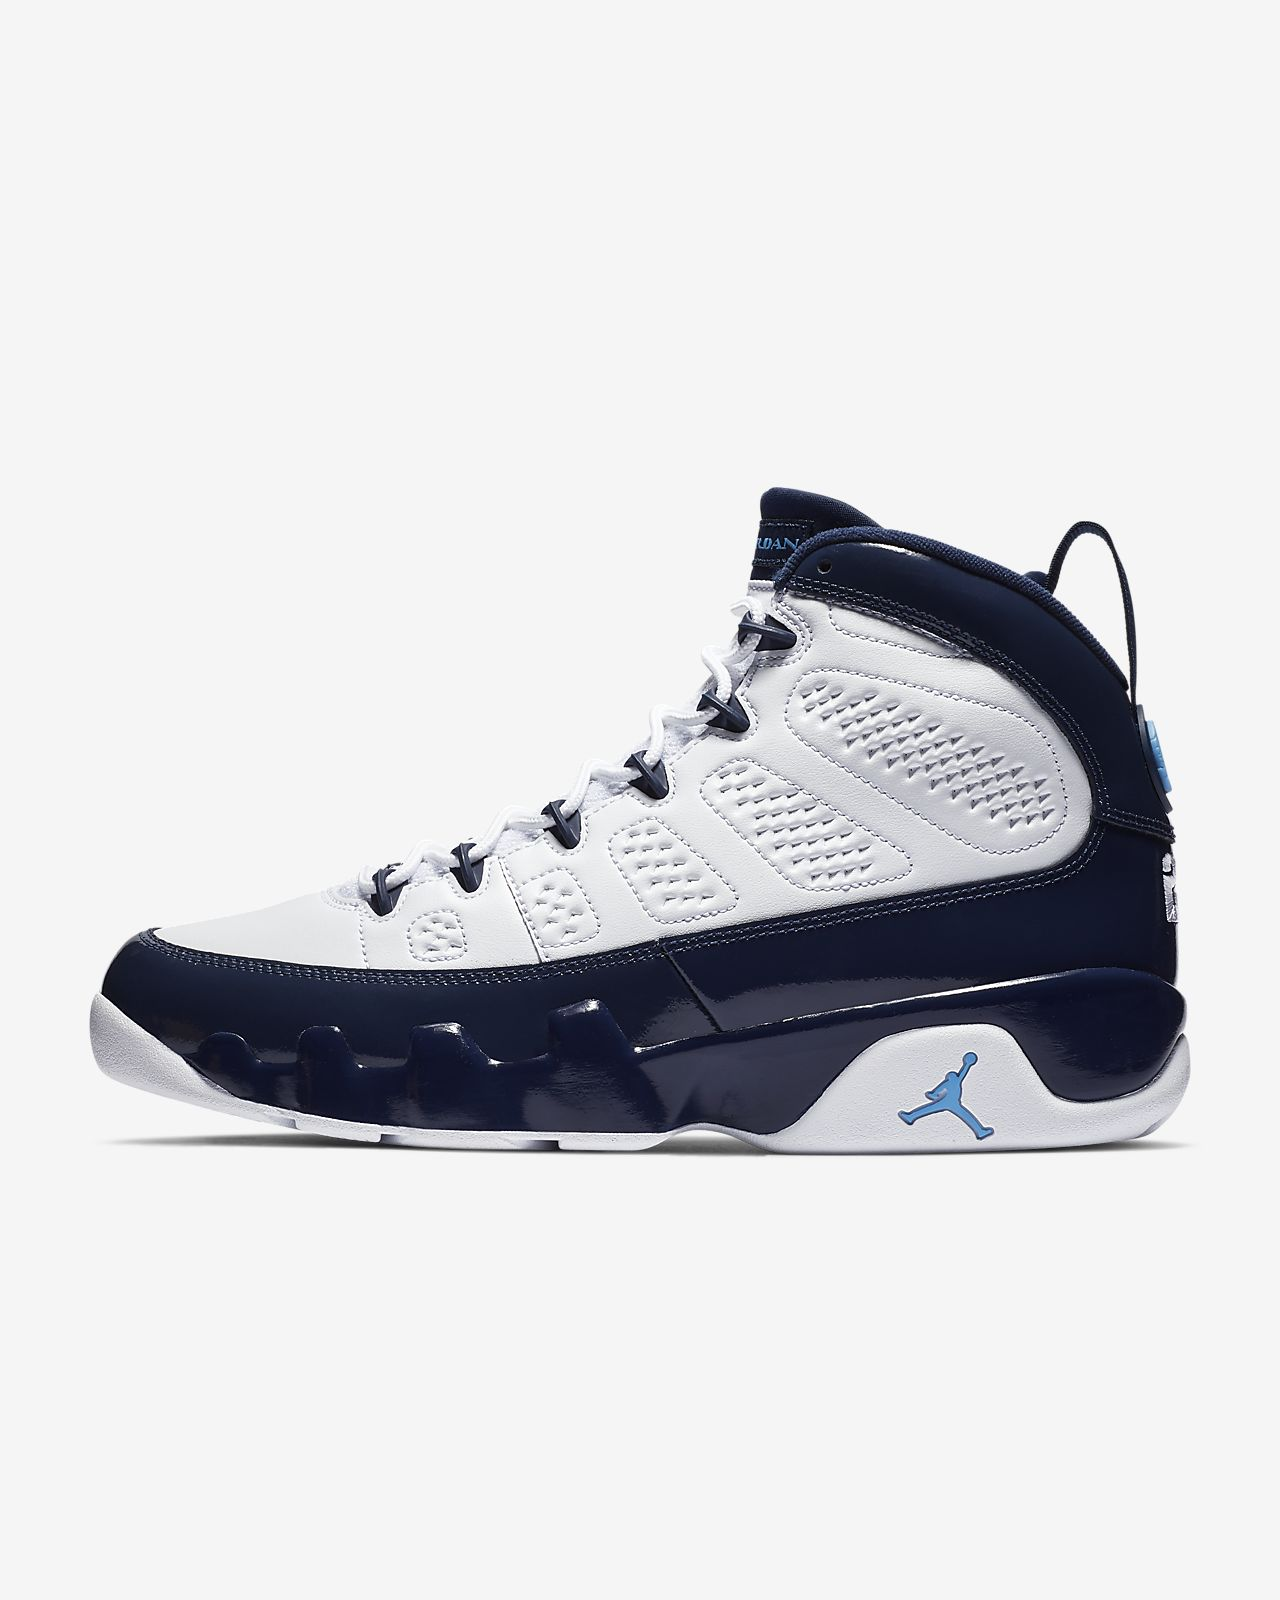 san francisco 57028 486a5 ... Air Jordan 9 Retro Men s Shoe